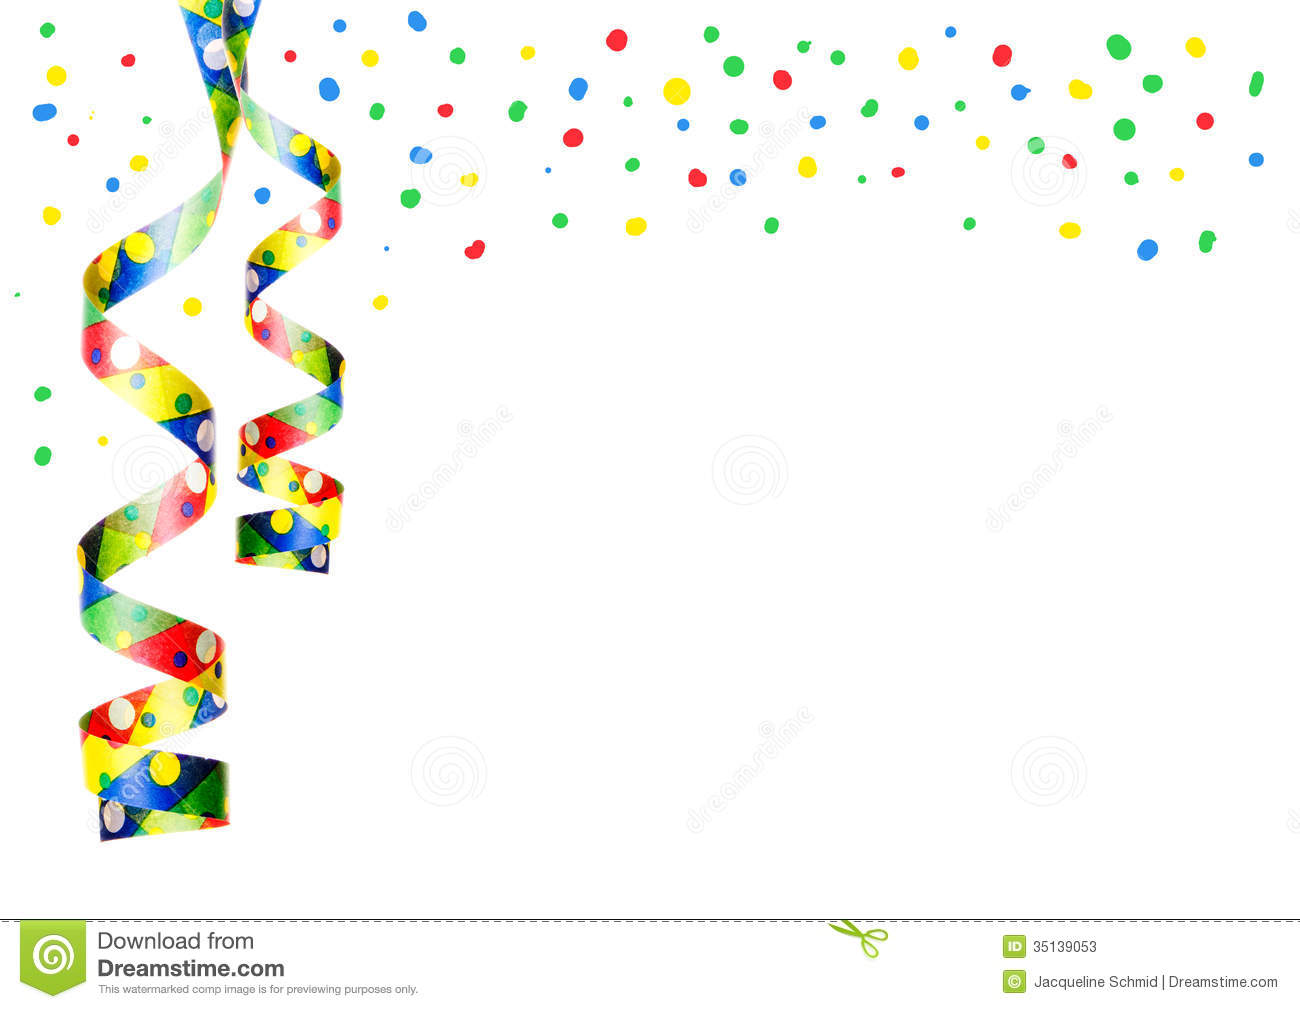 Decoration for parties stock image. Image of hanging - 35139053